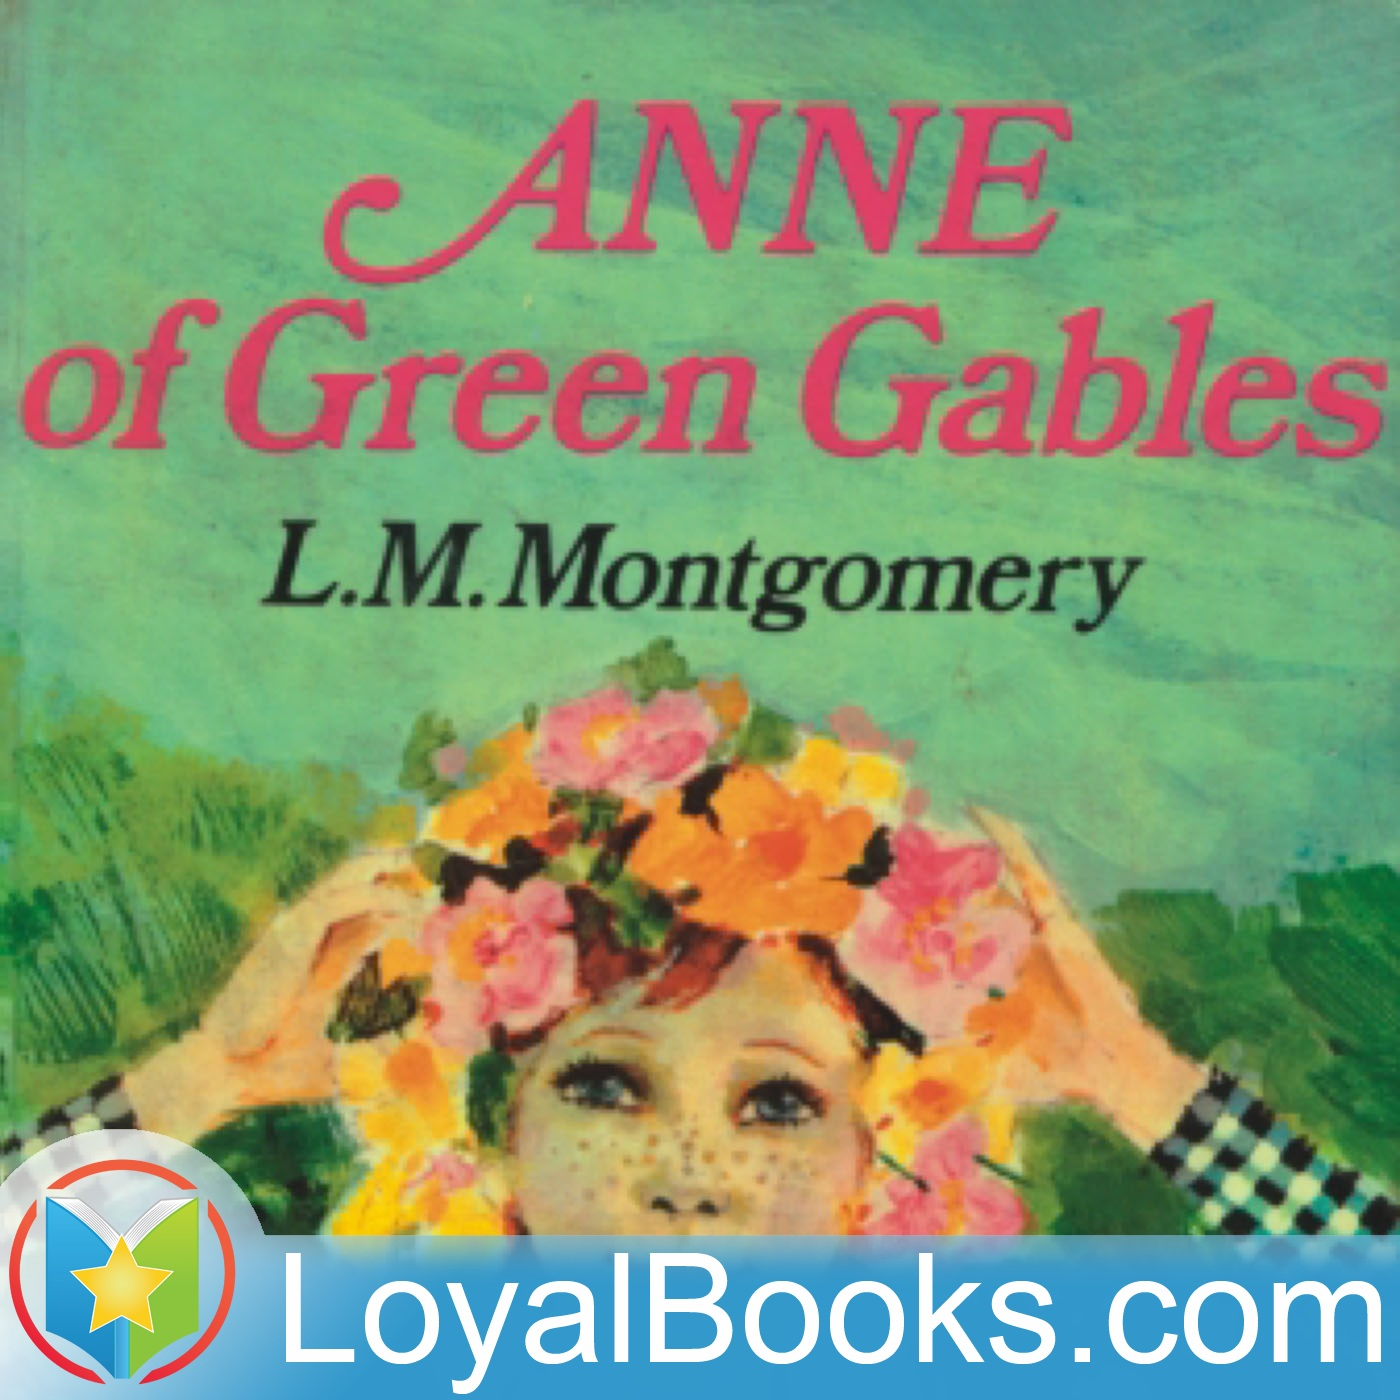 <![CDATA[Anne of Green Gables by Lucy Maud Montgomery]]>